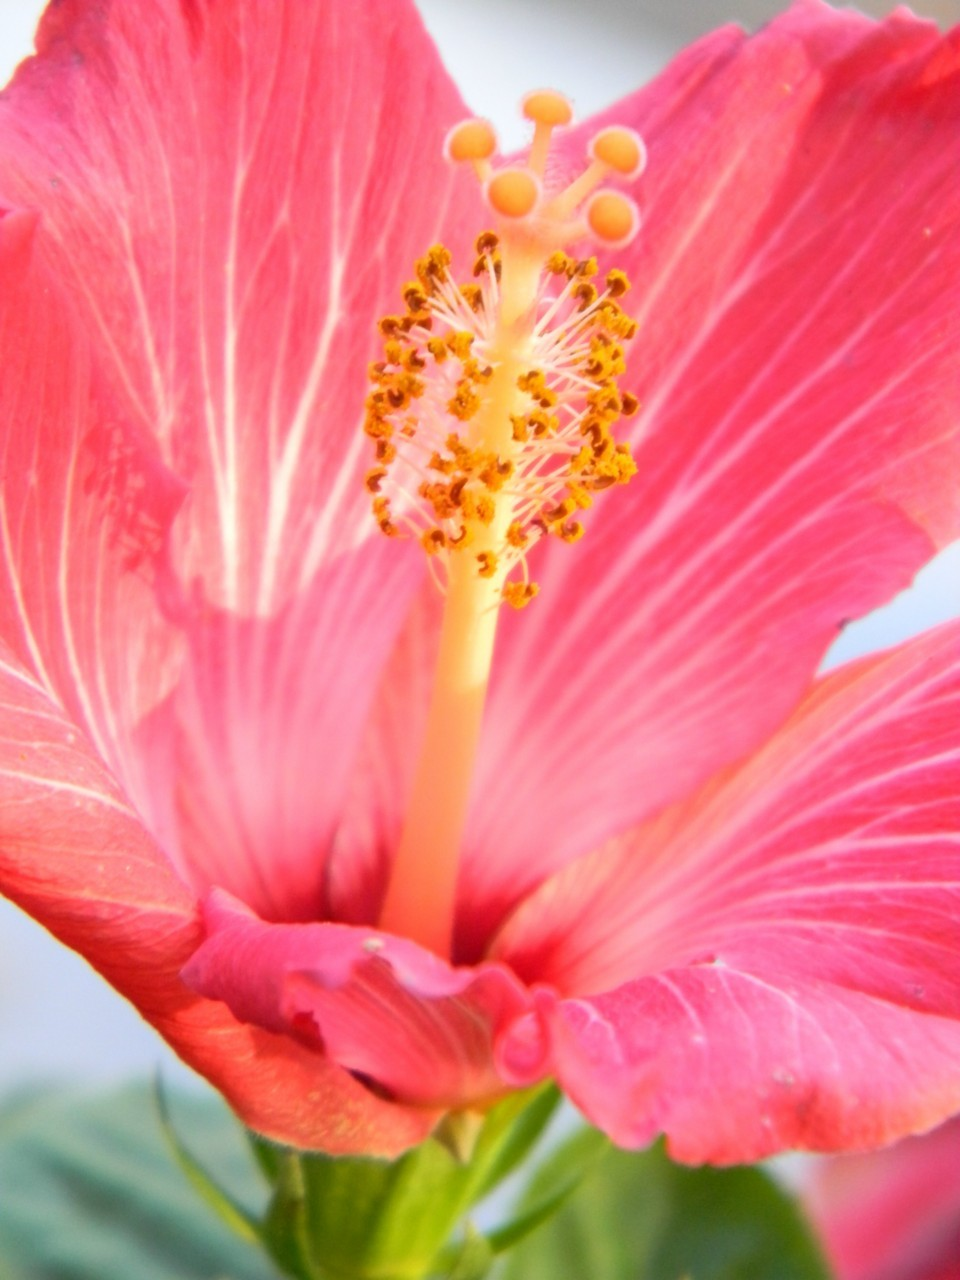 t-e-l-e-p-a-t-h-y:  s-e-q-u-i-n:  hibiscus  Full of so much life.